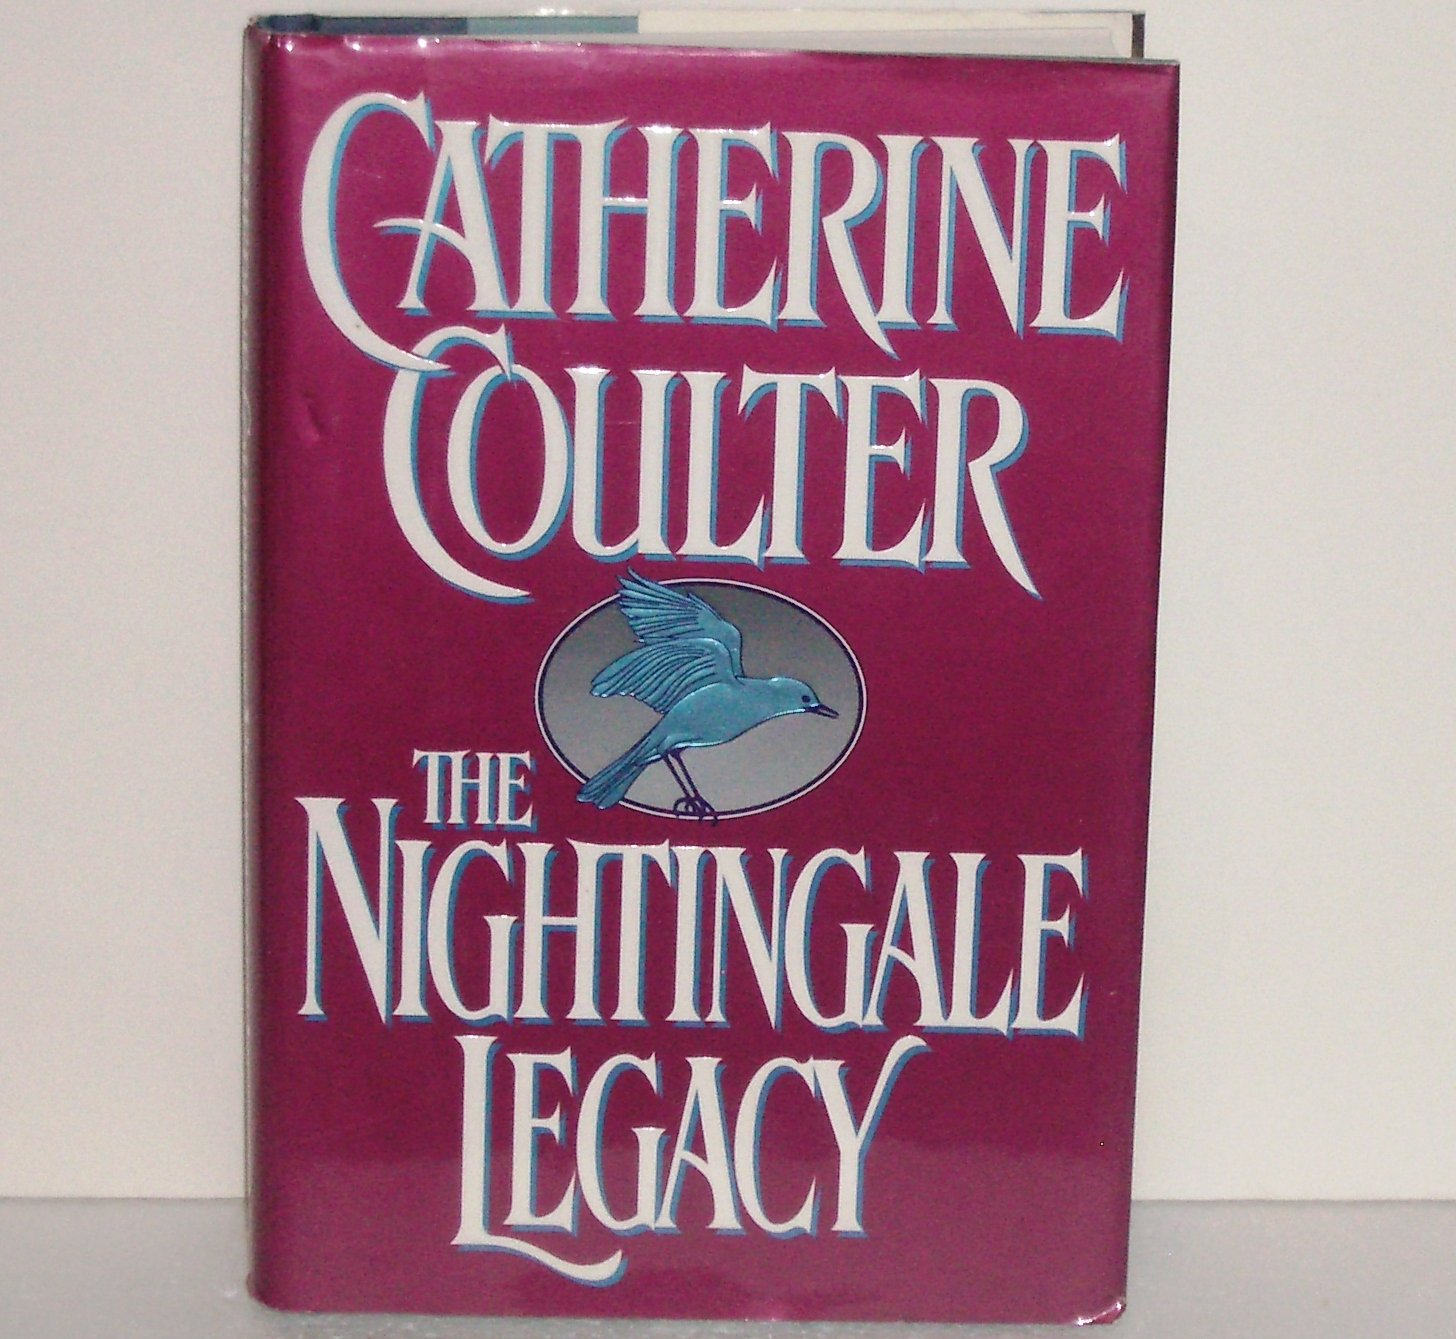 Nightingale Legacy CATHERINE COULTER Hardcover with Dust Jacket Regency Romance 1995 Legacy Series